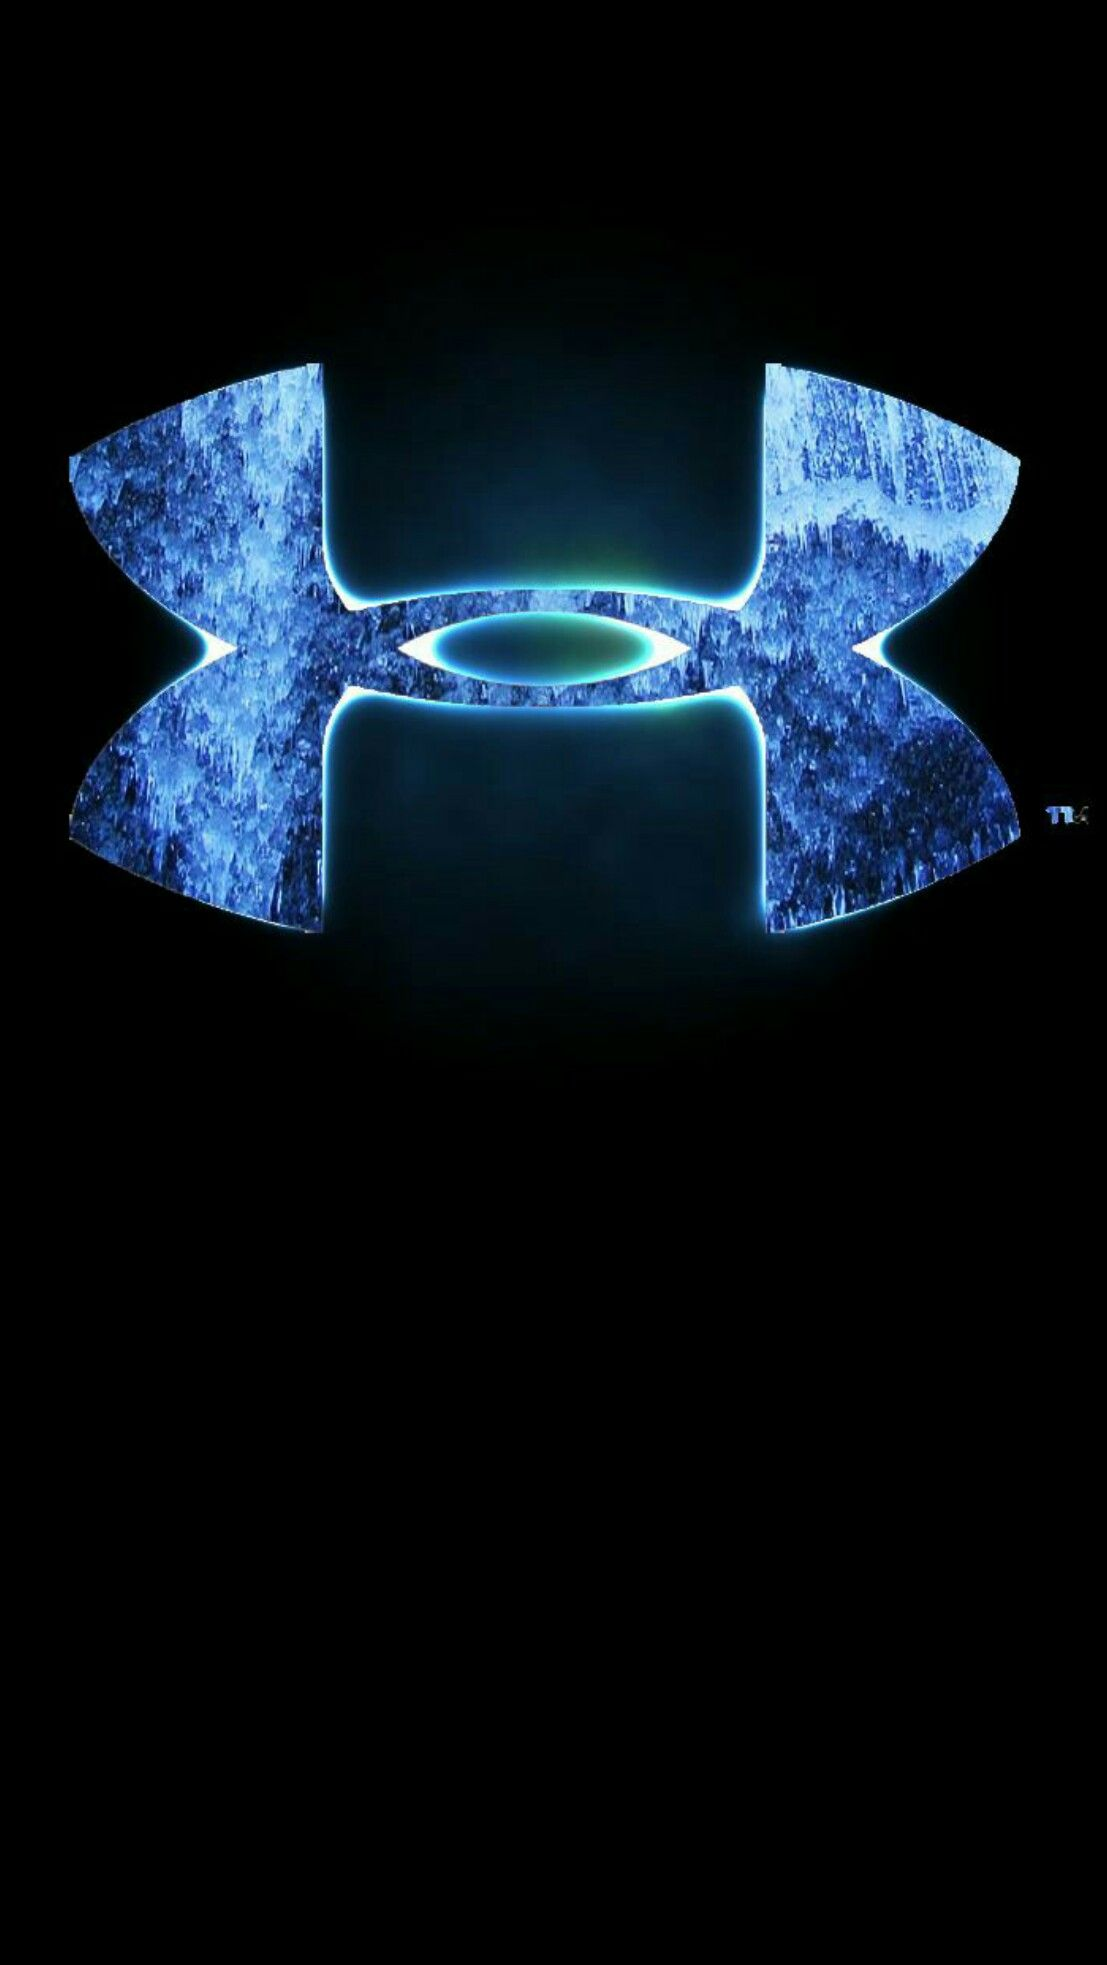 #underarmour #black #wallpaper #iPhone #android | Under Armor